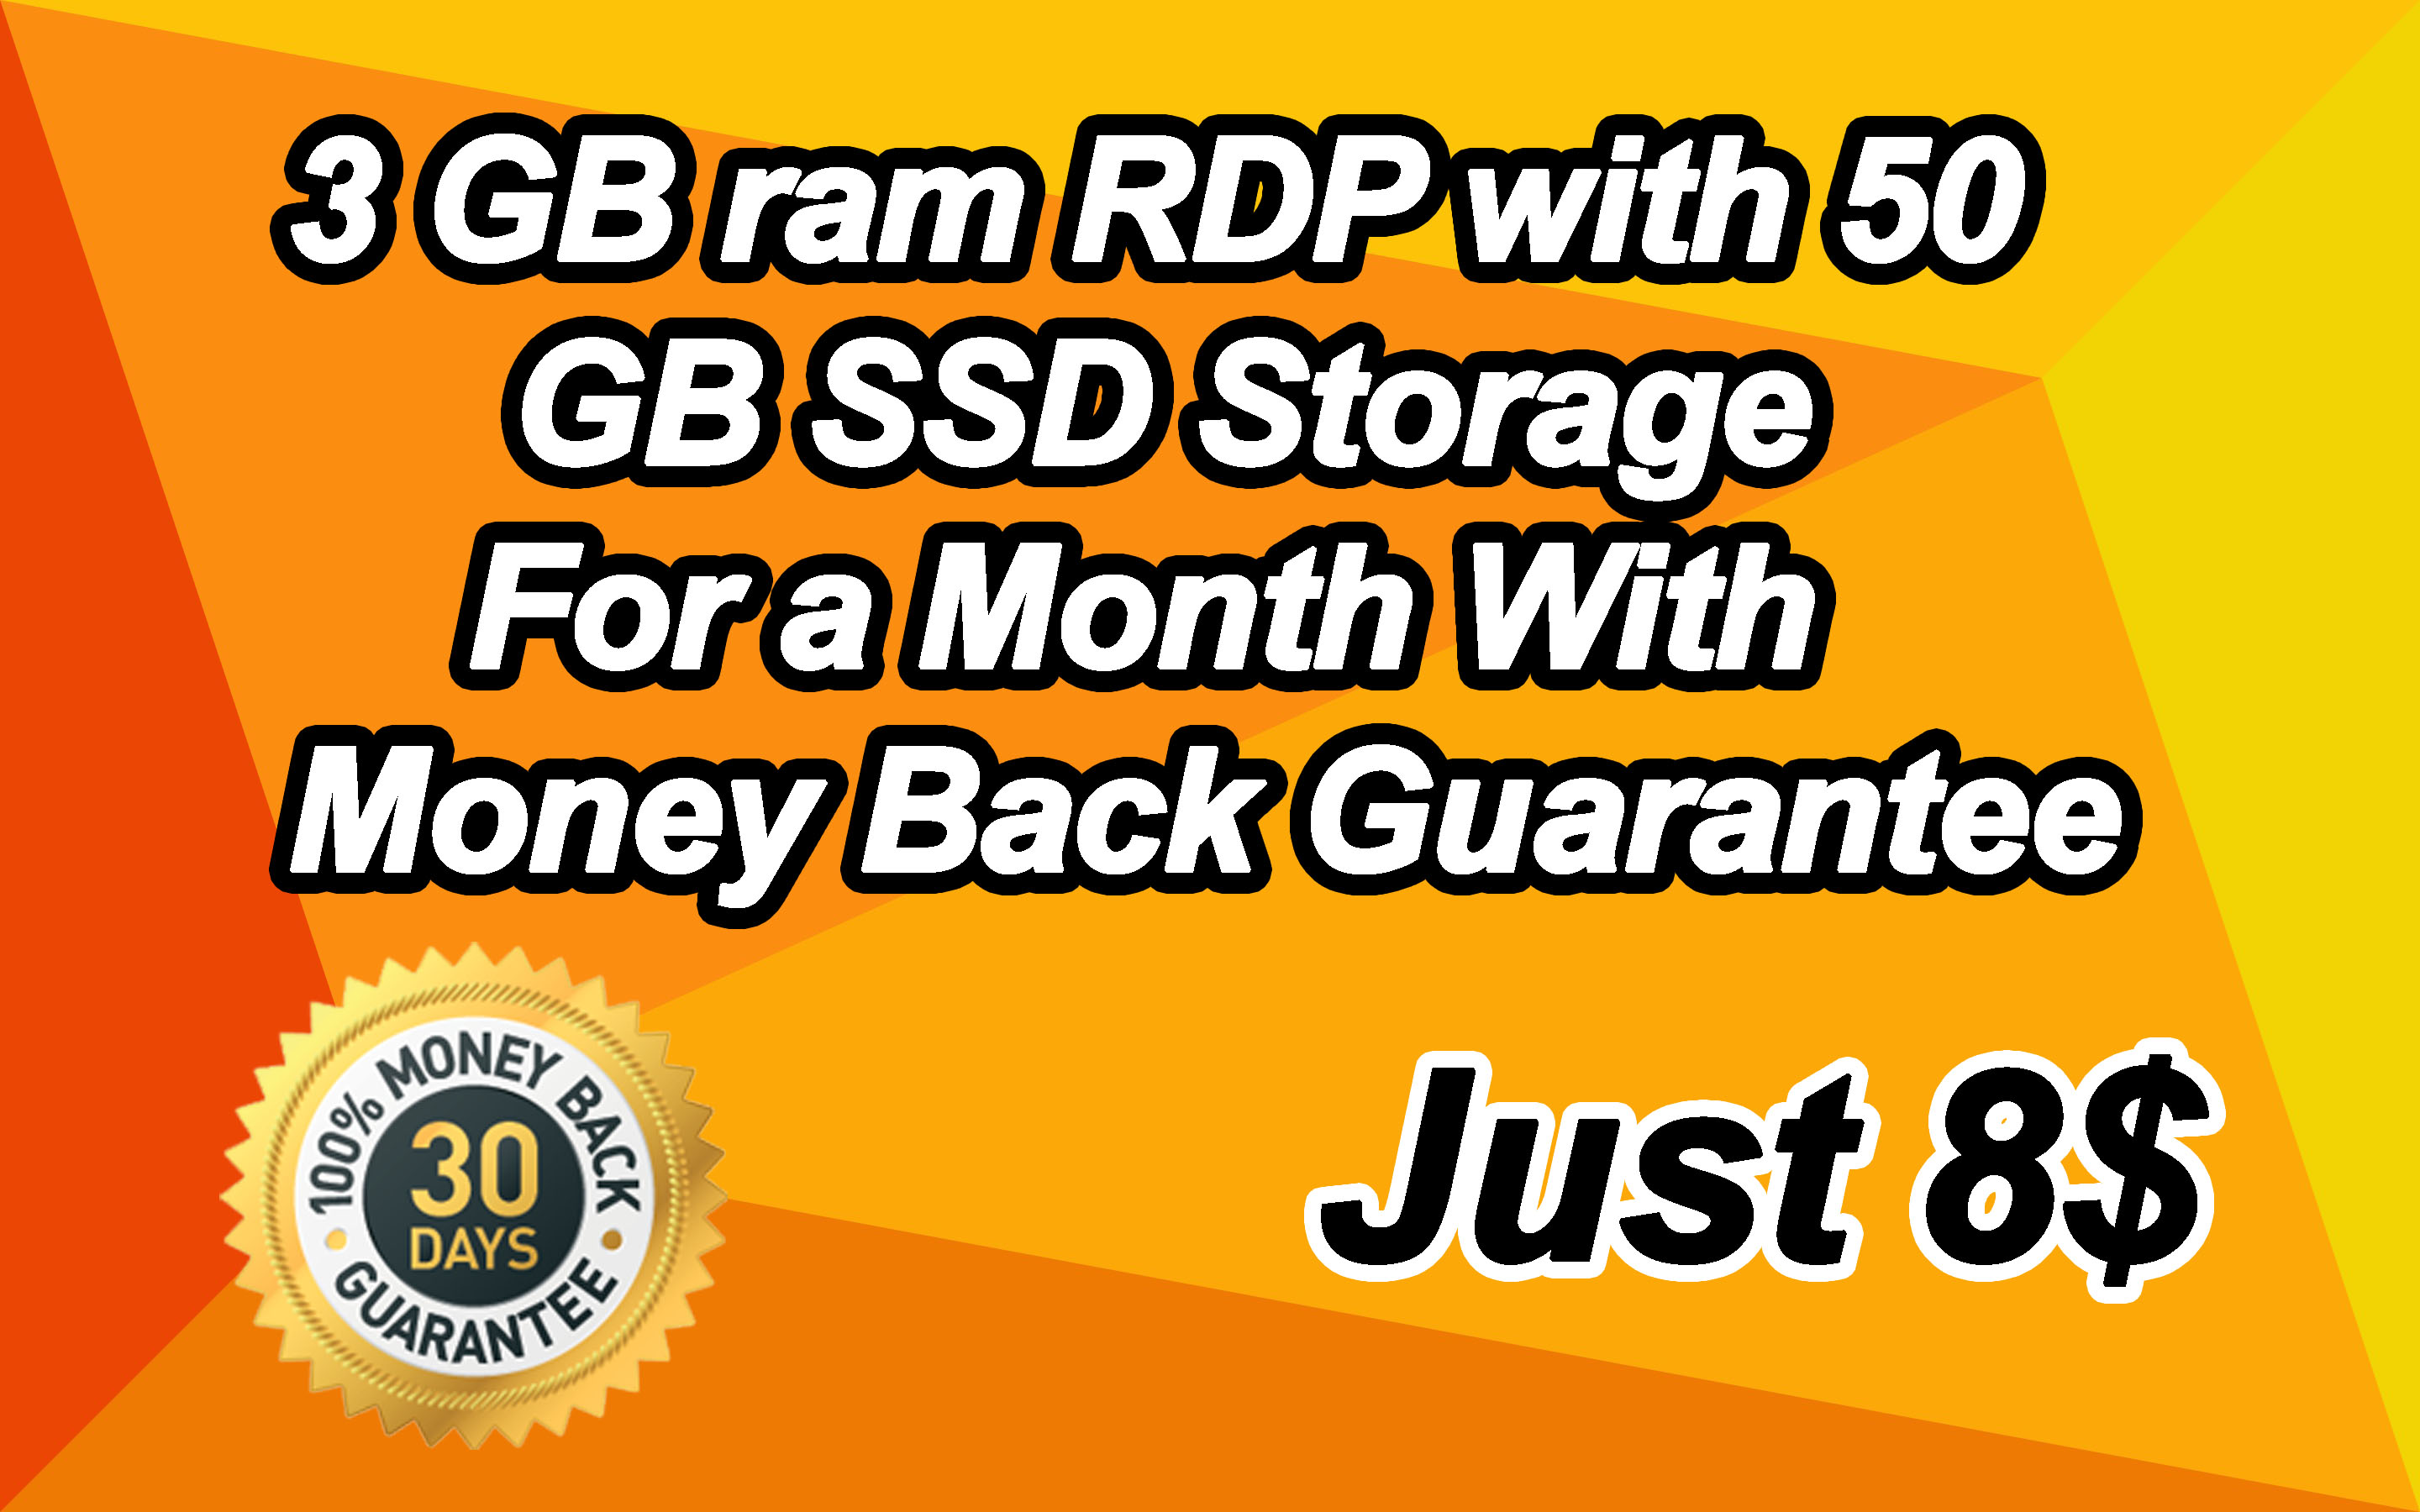 3 GB ram RDP with 50 GB SSD Storage For a Month With Money Back Guarantee